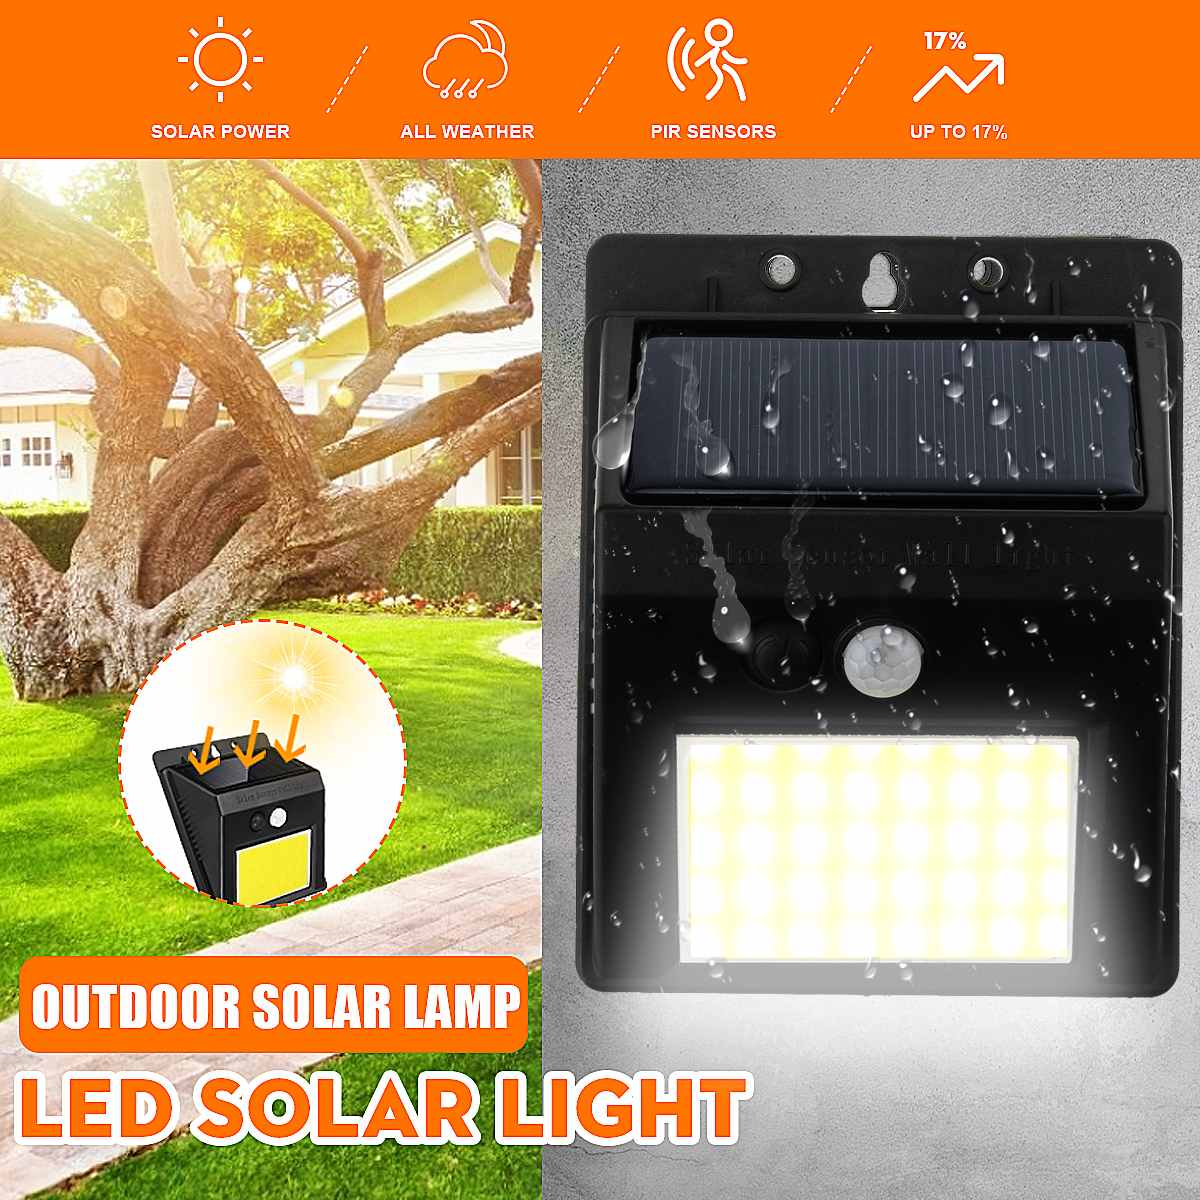 Solar Light Outdoor Solar Lamp 48/96 LED Powered Sunlight Waterproof PIR Motion Sensor Street Light For Garden Decoration